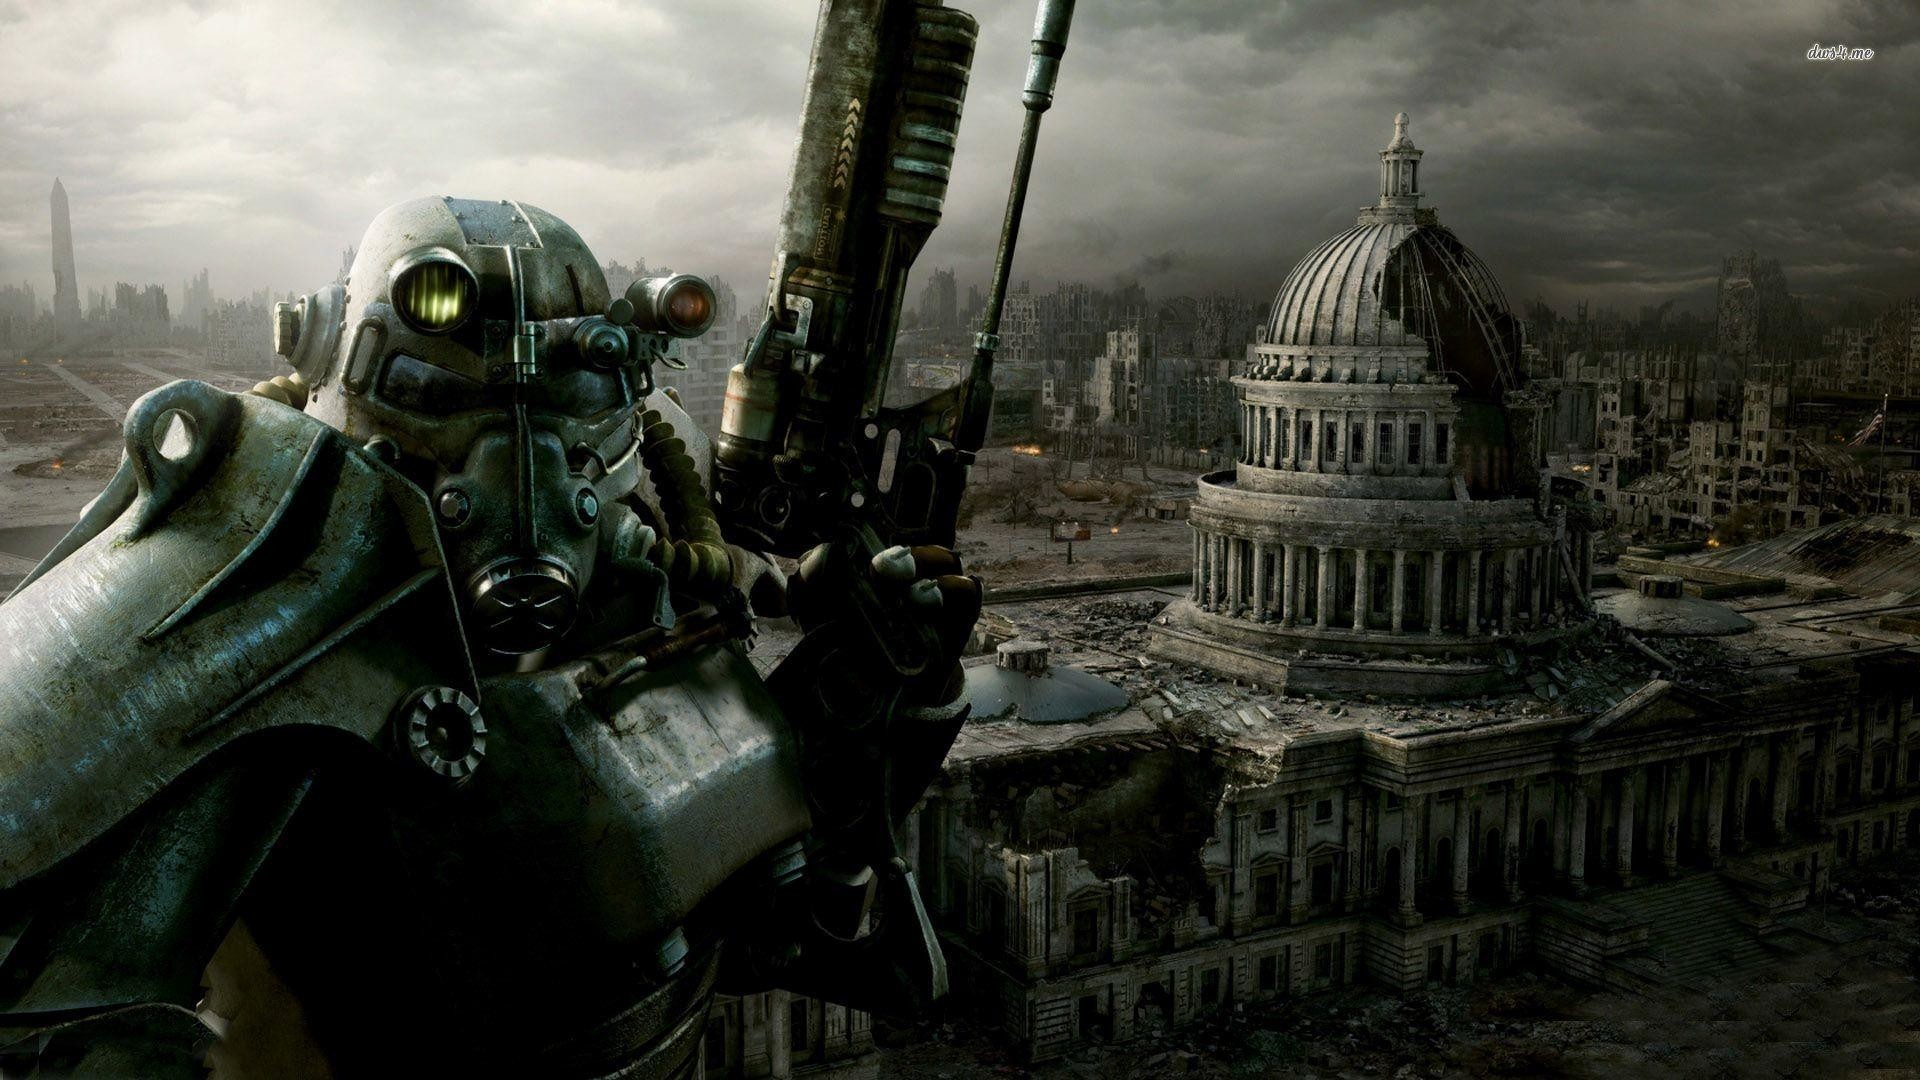 1920x1080 9. fallout 3 wallpaper9